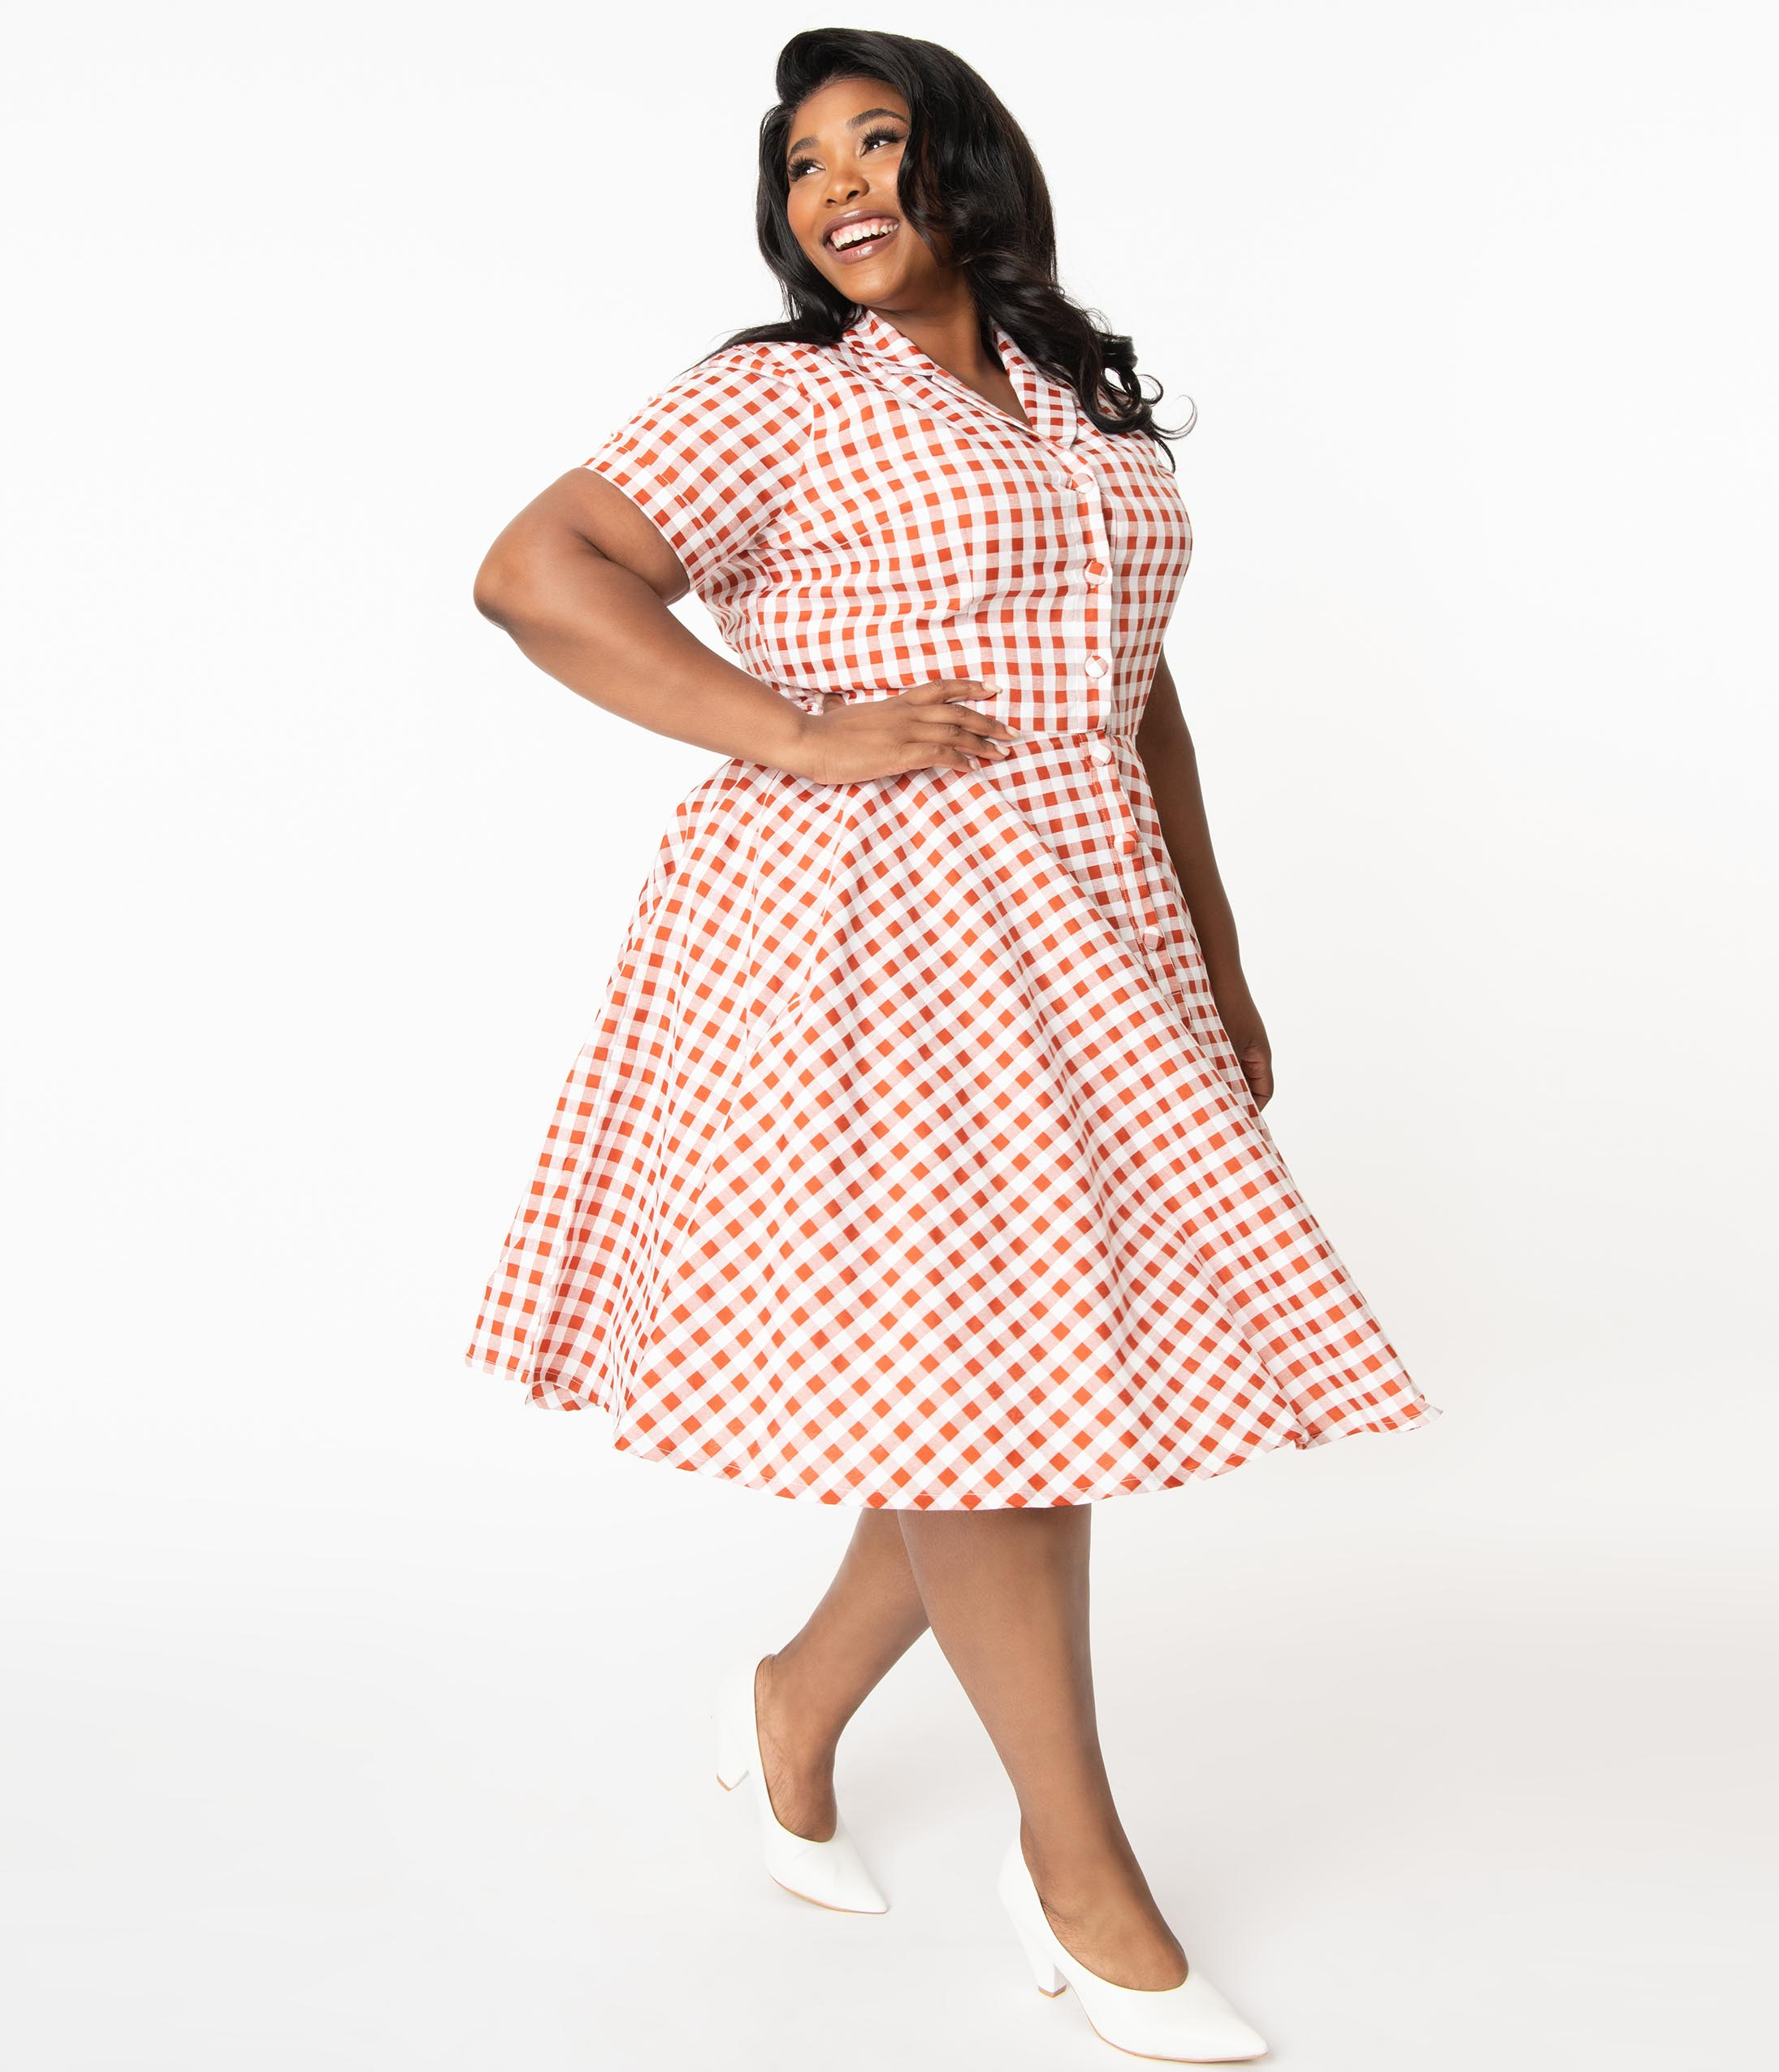 Vintage 50s Dresses: Best 1950s Dress Styles Plus Size 1950S Rust Red  White Gingham Caterina Swing Dress $88.00 AT vintagedancer.com